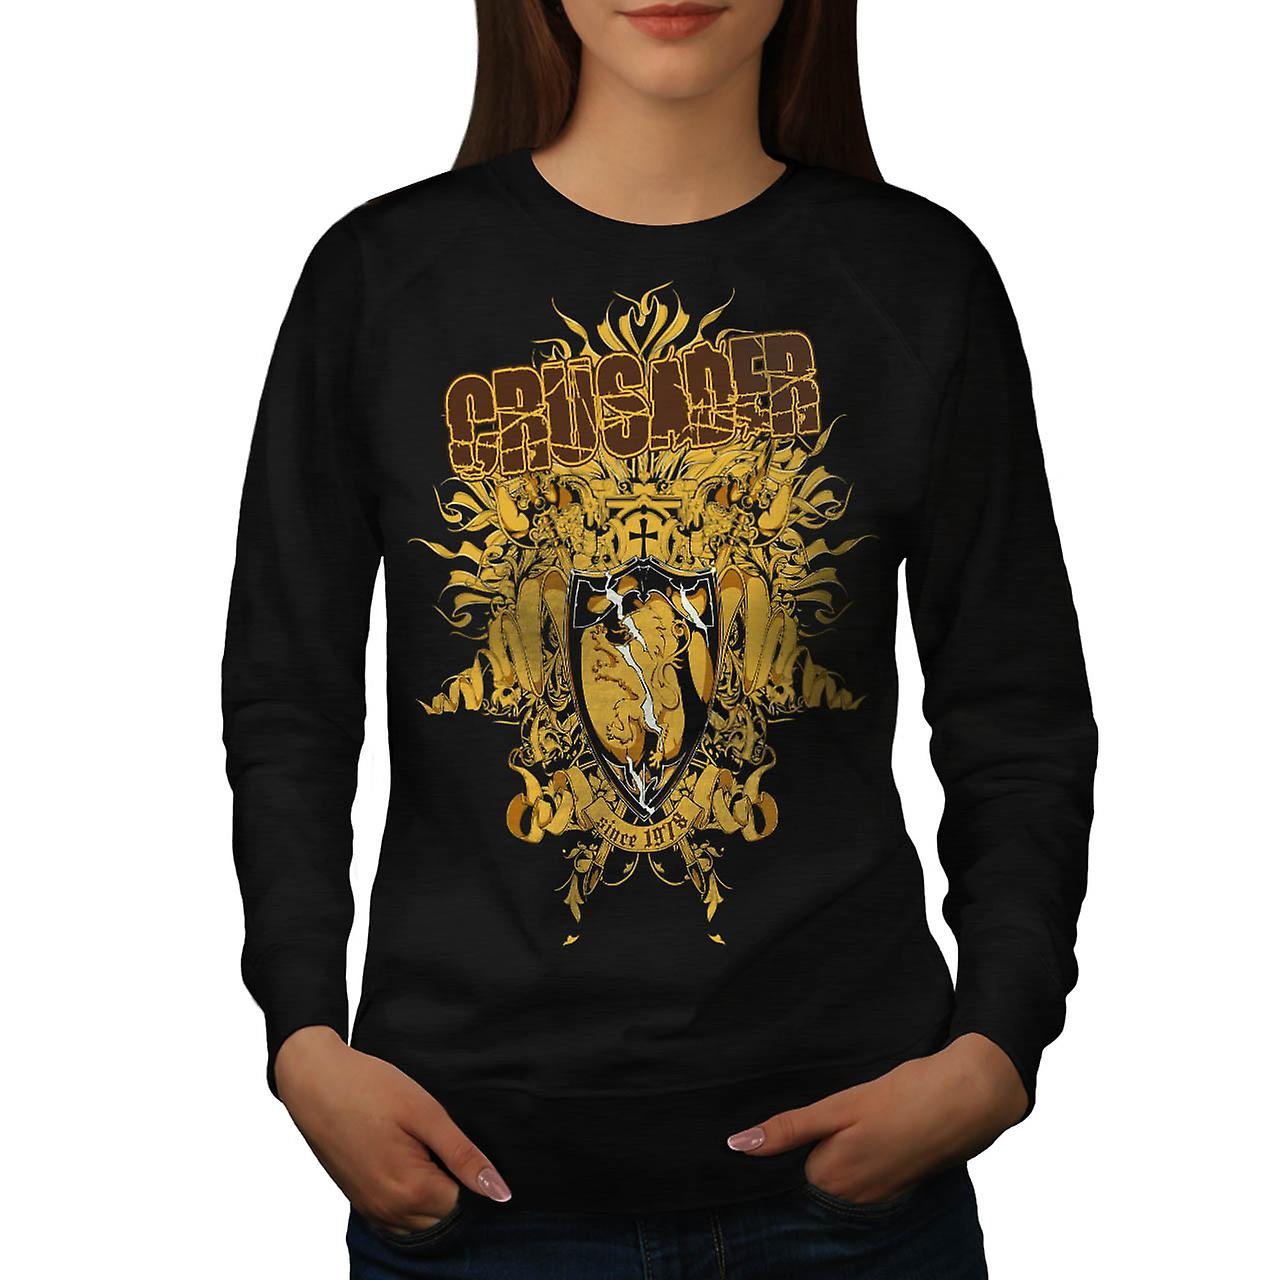 Crusader Knight Hero Warriors Women Black Sweatshirt | Wellcoda